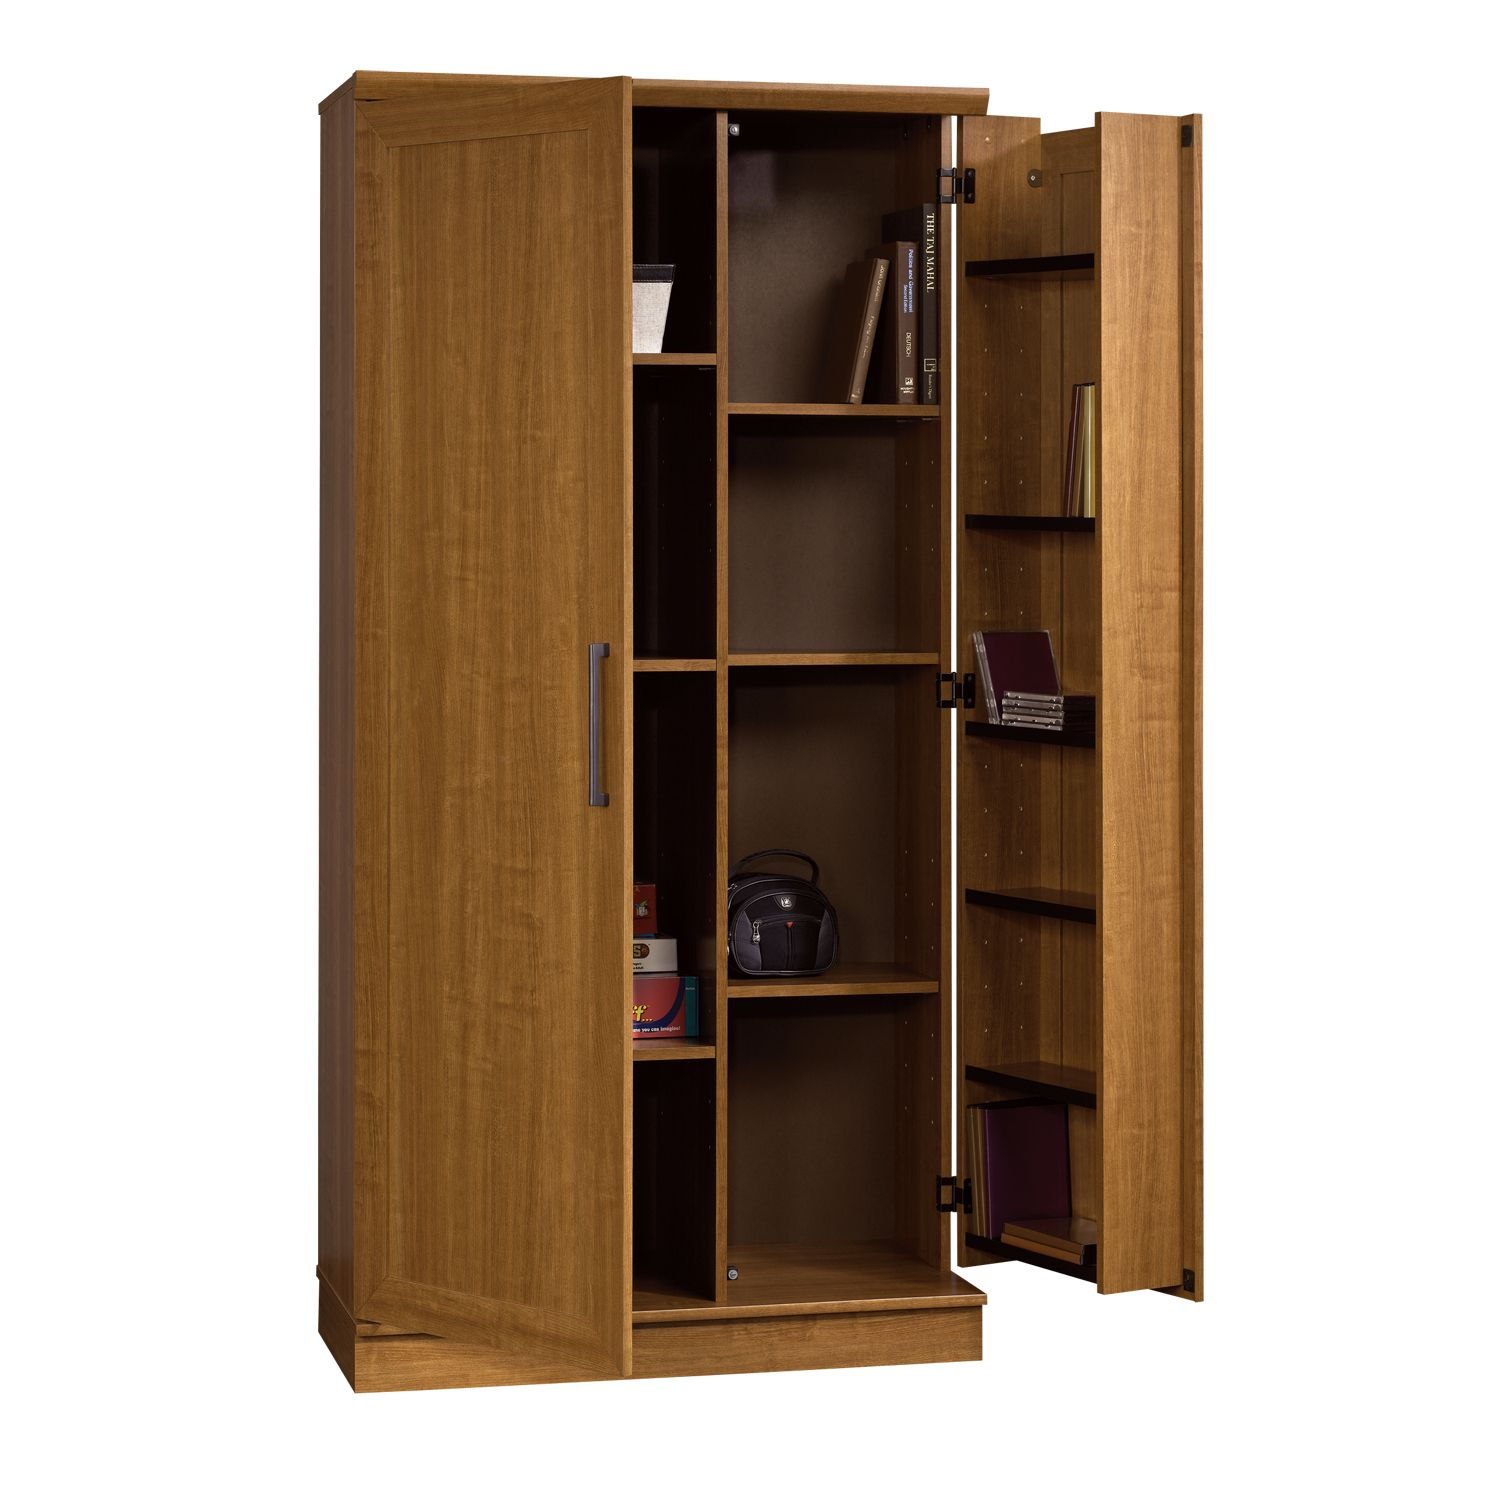 House furniture  Looking for Sauder Homeplus Storage Cabinet Swing Out Doors Sienna Oak  The